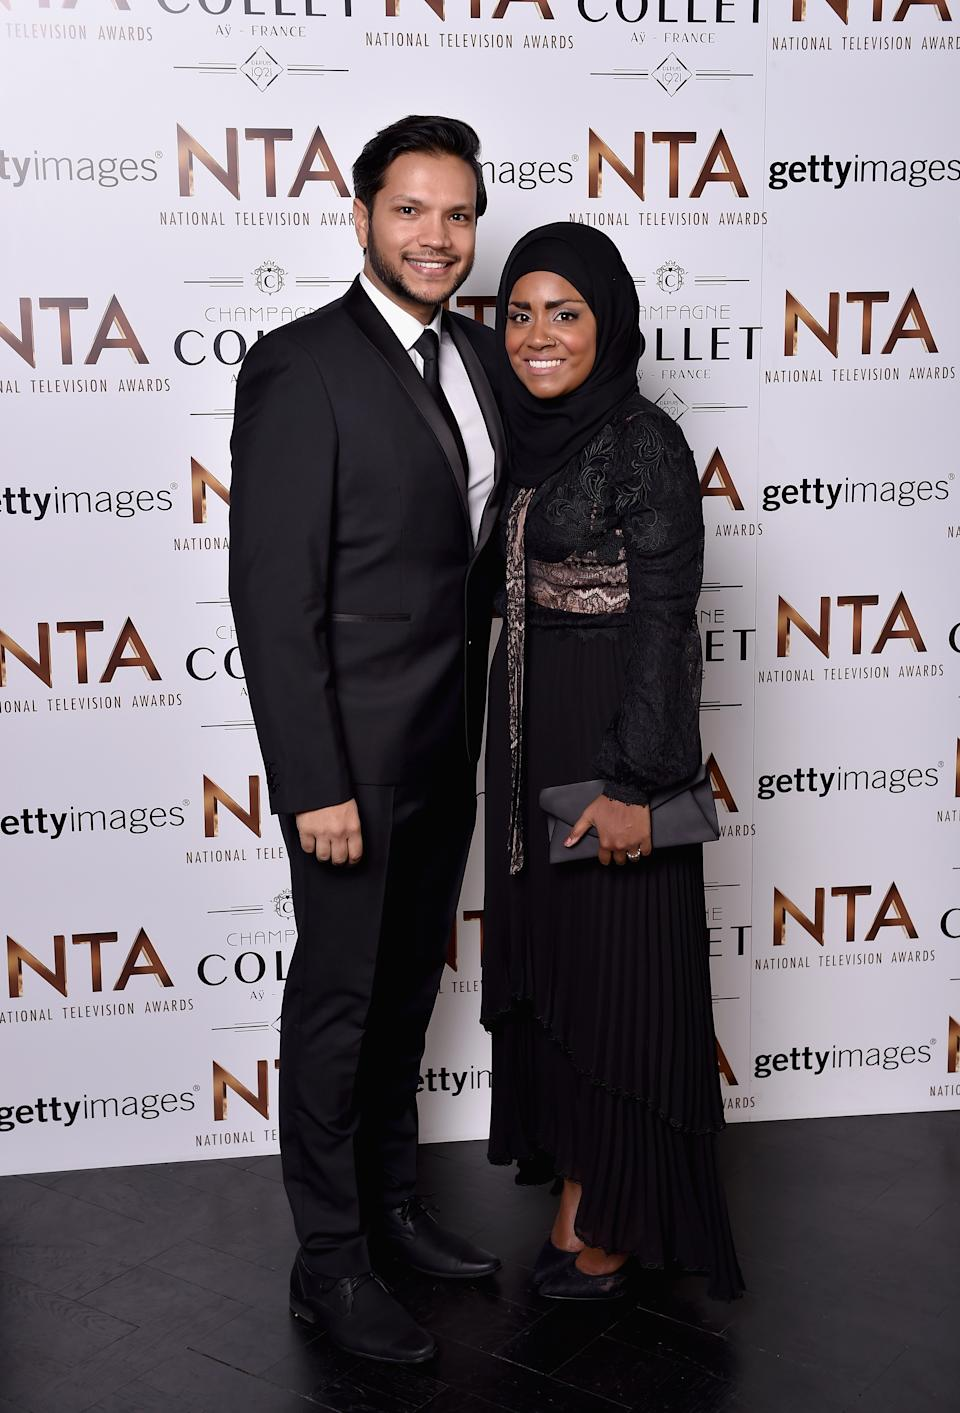 LONDON, ENGLAND - JANUARY 20:  Abdal and Nadiya Hussain attend the 21st National Television Awards at The O2 Arena on January 20, 2016 in London, England.  (Photo by Gareth Cattermole/Getty Images)